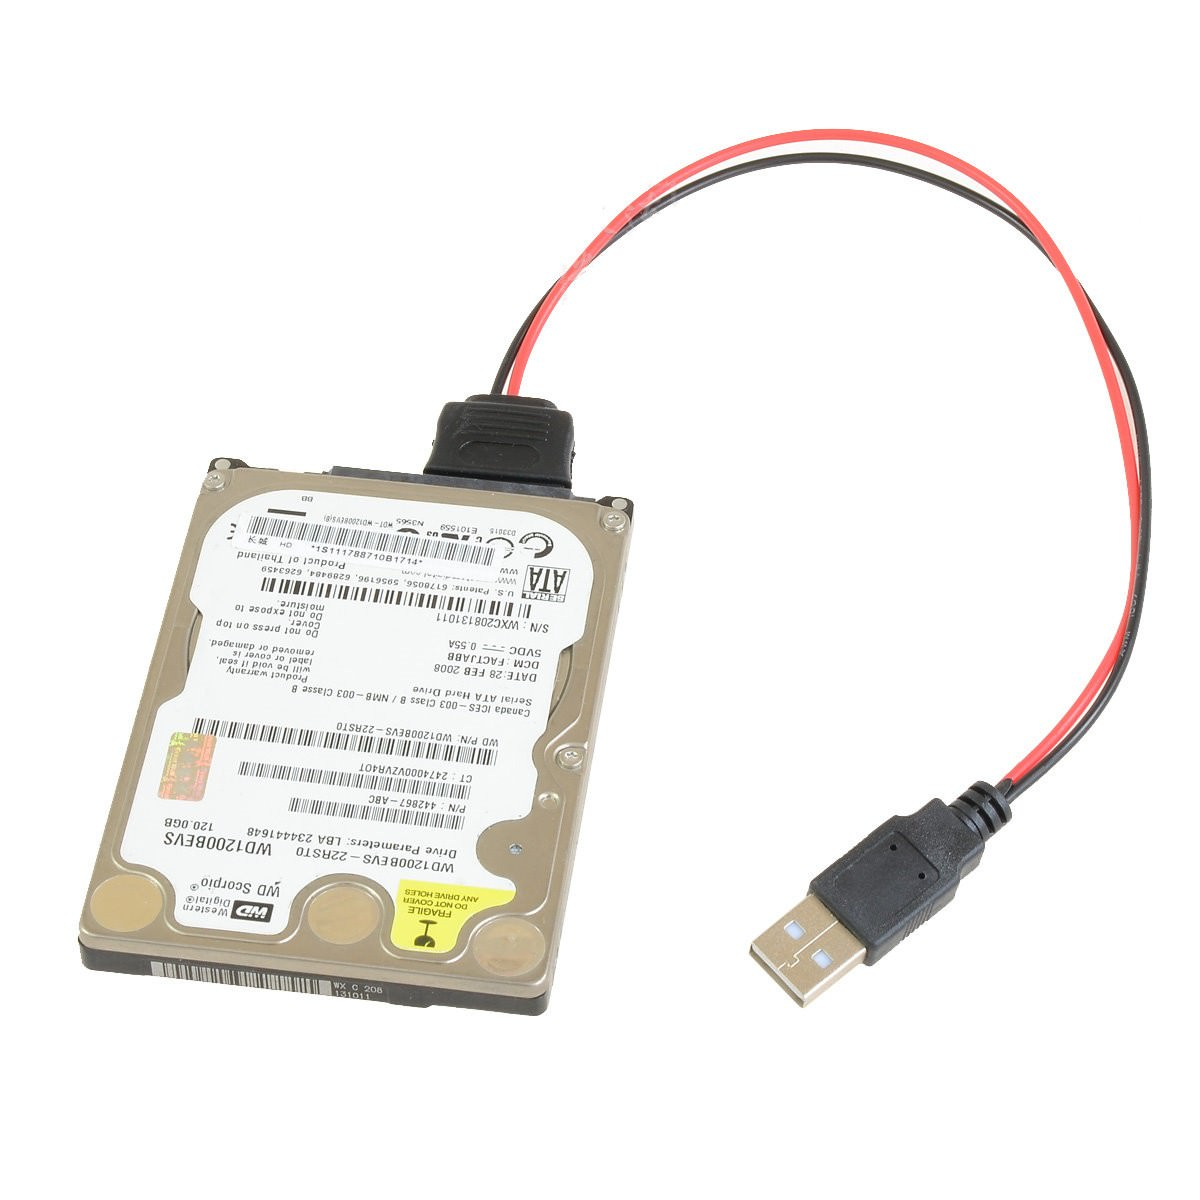 USB to 2.5 SSD 5-Pin SATA Power Adapter Cable (20cm) - modDIY.com